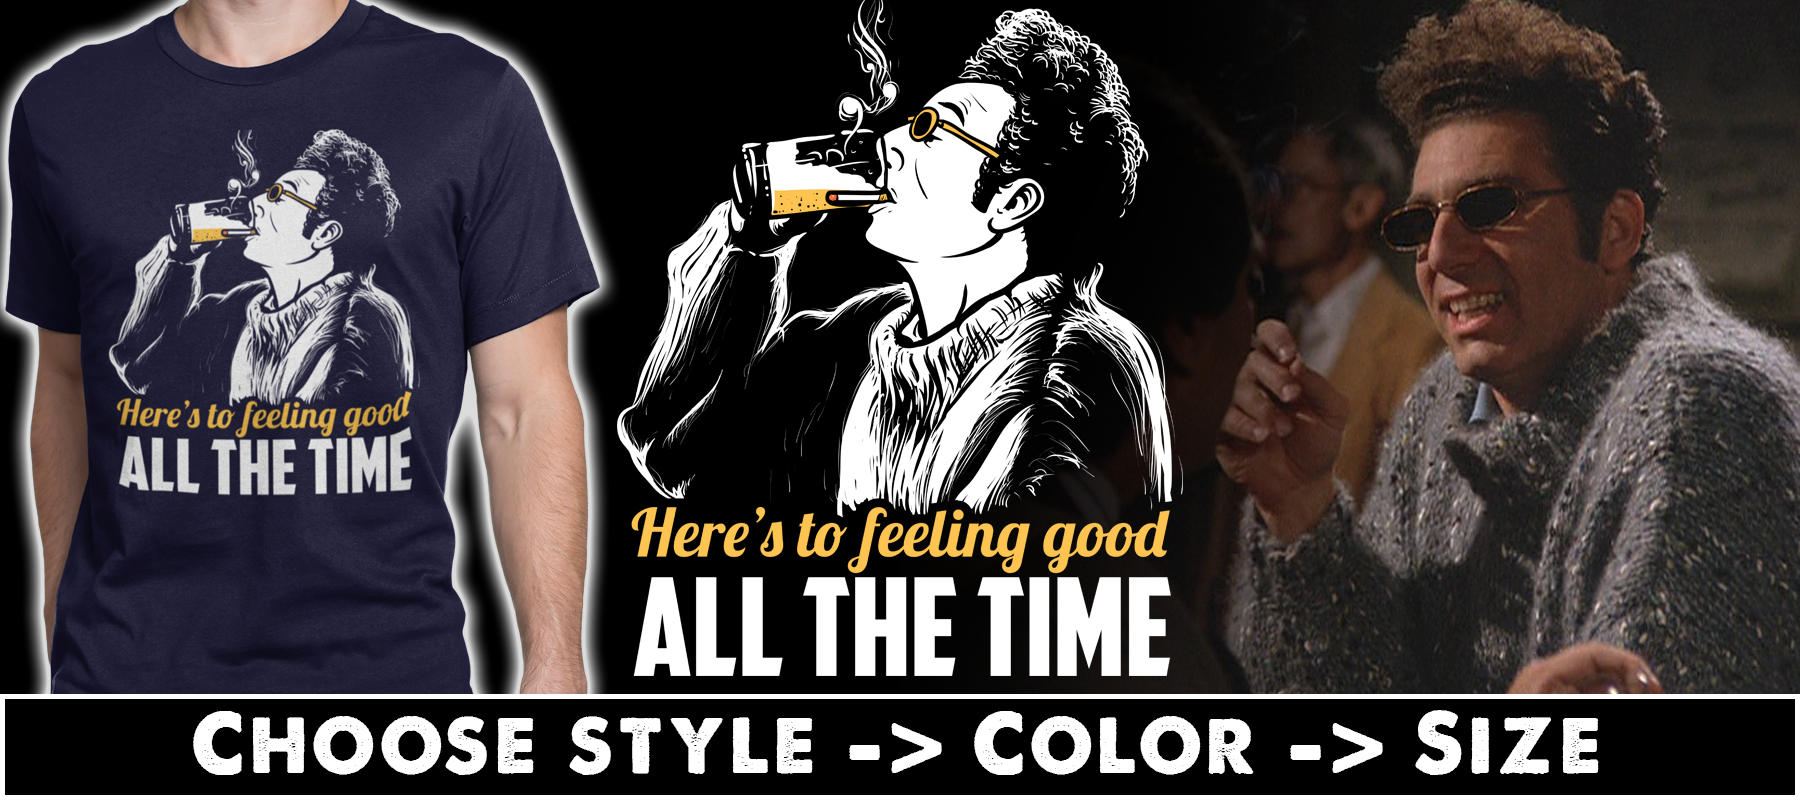 Feeling Good T-shirts, Hoodies & Mugs